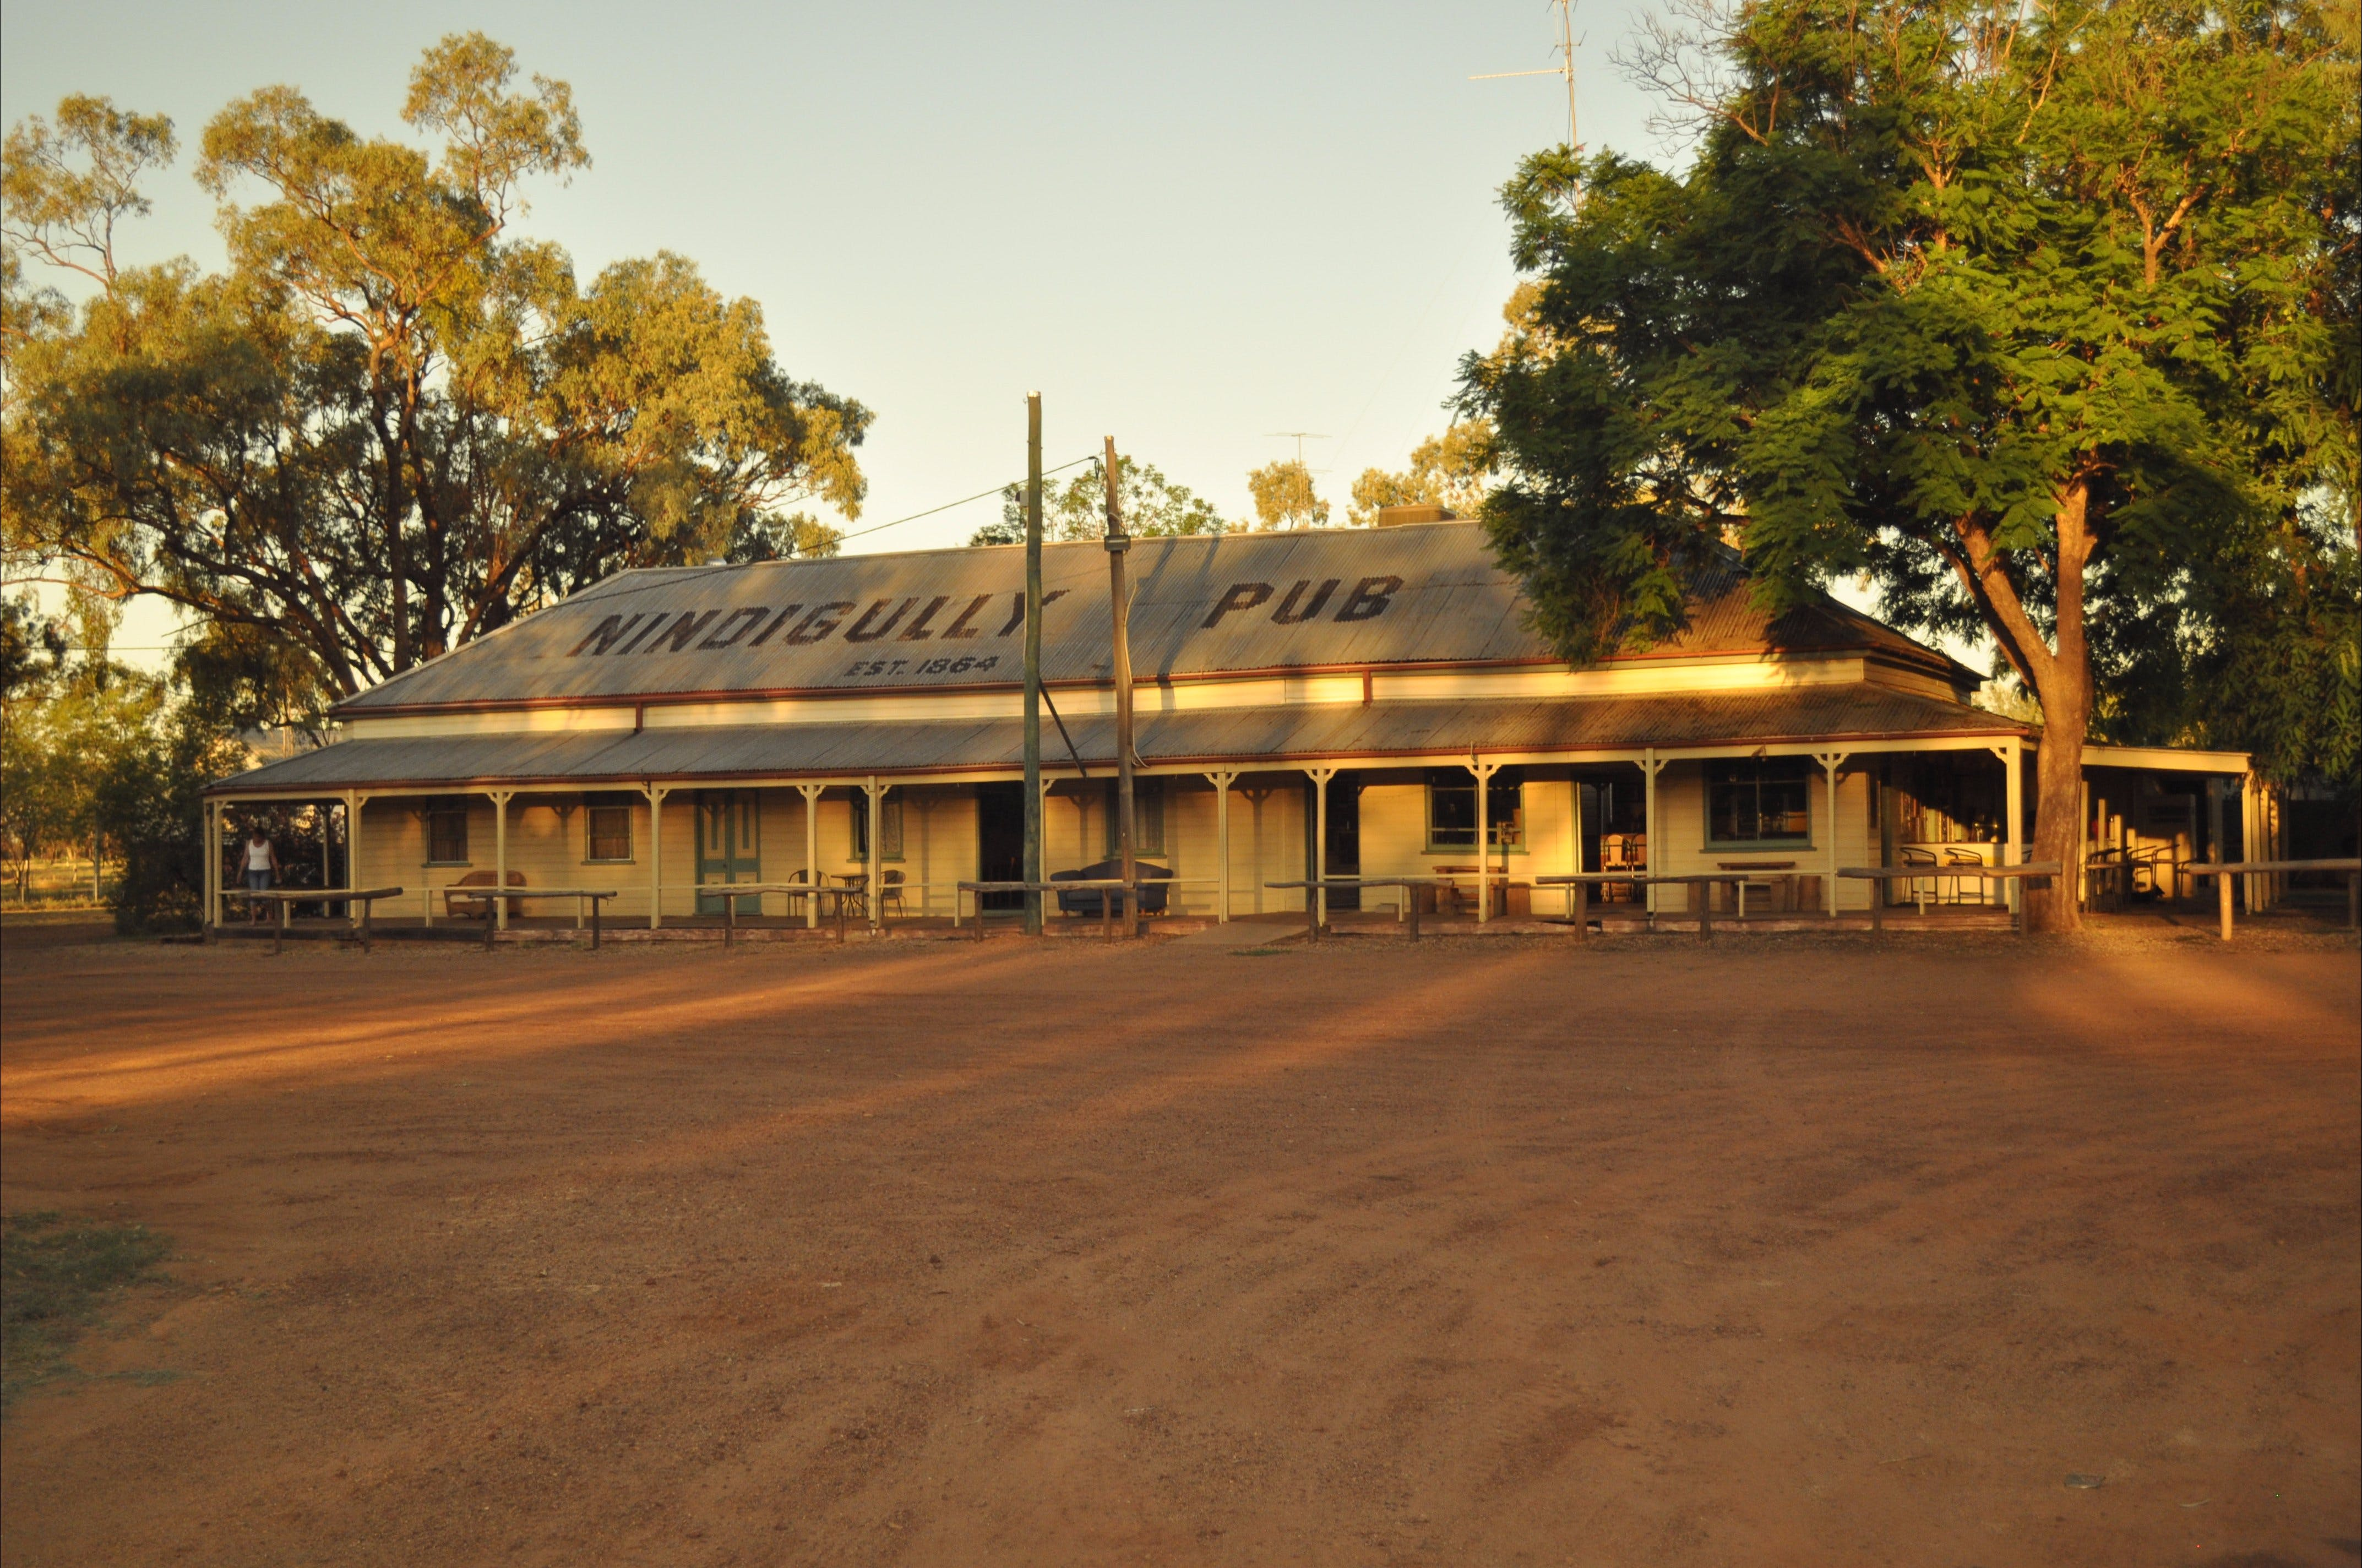 Nindigully Pub - Accommodation Perth